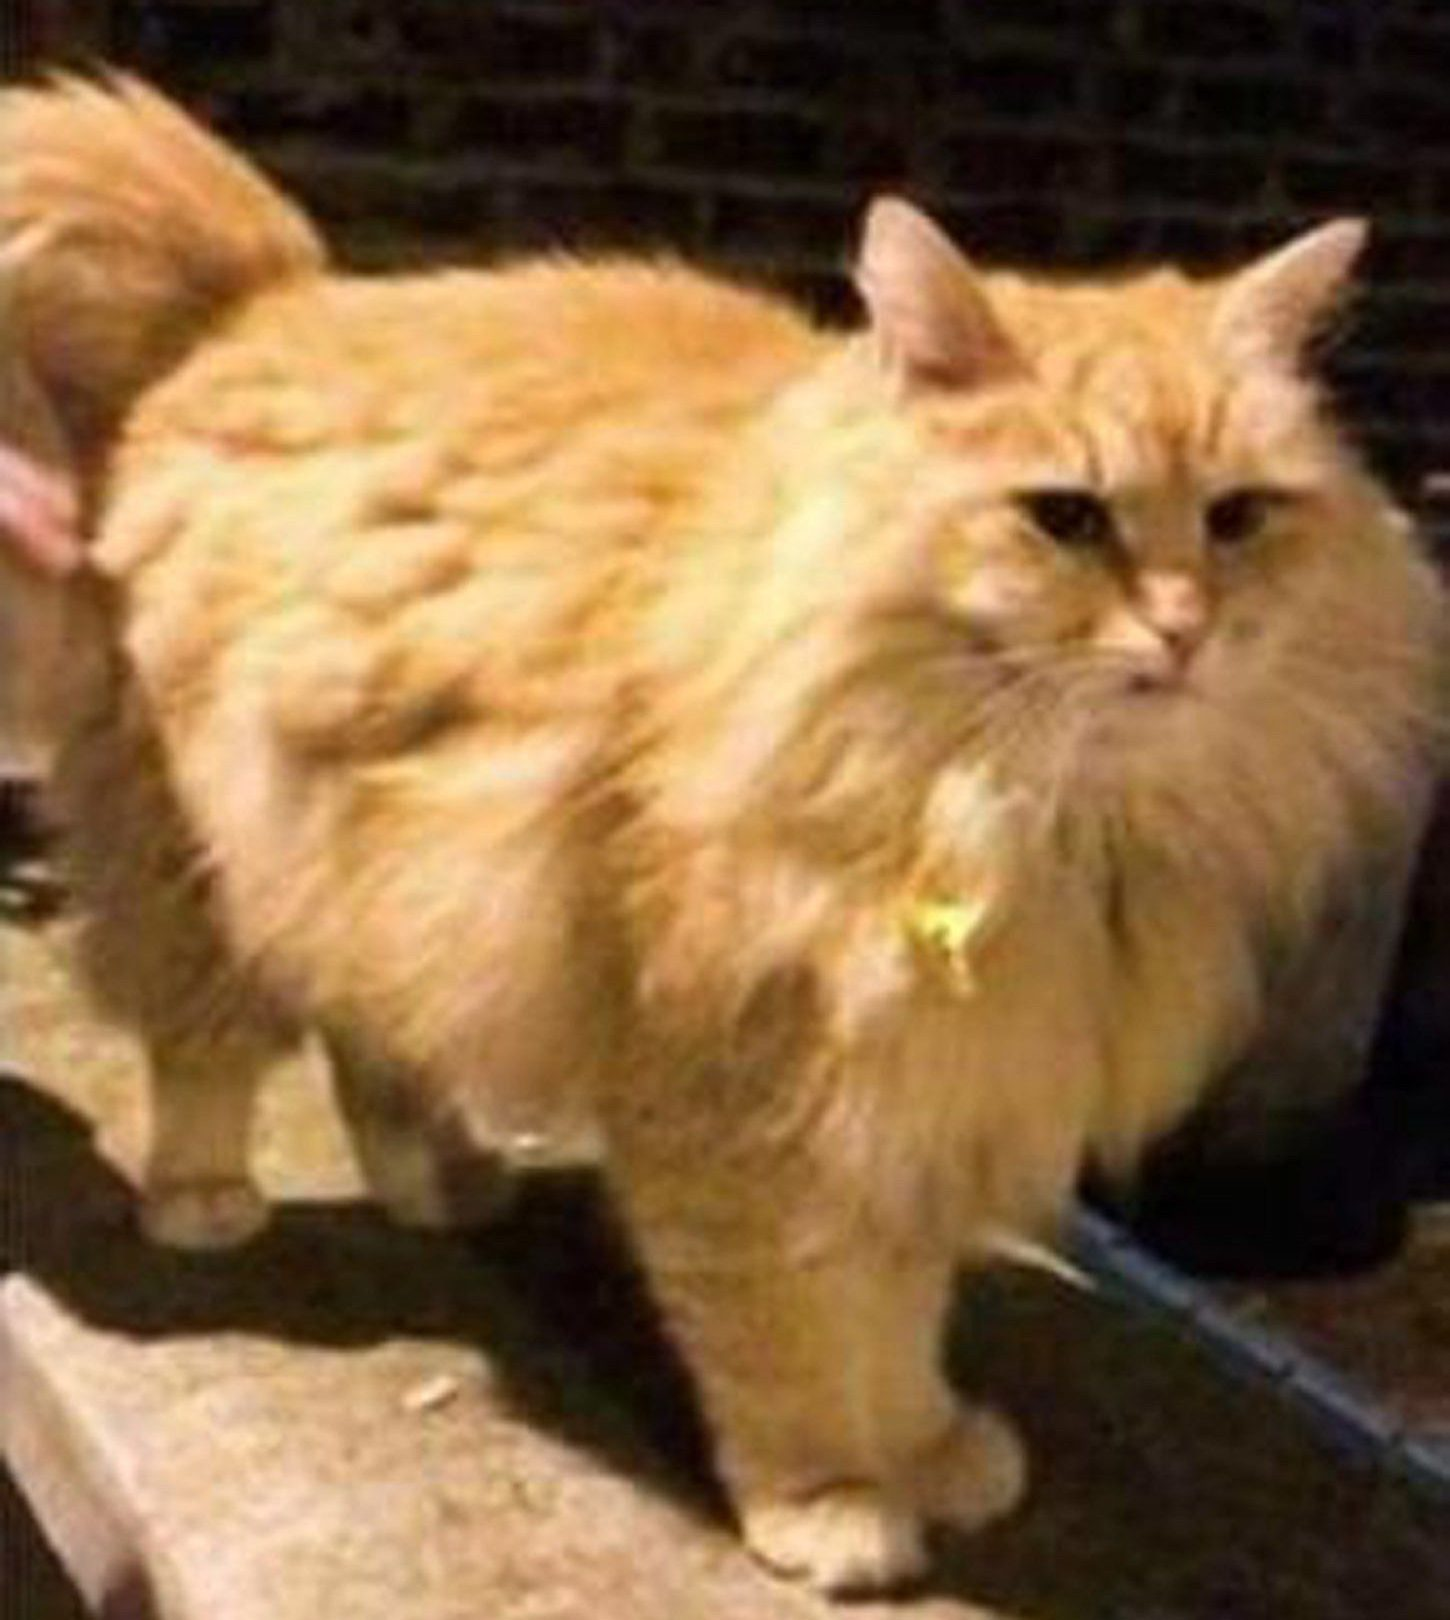 Undated handout photo issued by the Metropolitan Police of Mr Muk, a large Siberian Forest ginger cat, who was grabbed outside his owner's home in Petherton Road, Islington, on July 30, Scotland Yard said. PRESS ASSOCIATION Photo. Issue date: Monday September 10, 2018. Police appealing for help tracking down a cat-snatcher have released a photo of a man they wish to question. See PA story POLICE Cat. Photo credit should read: Metropolitan Police/PA Wire NOTE TO EDITORS: This handout photo may only be used in for editorial reporting purposes for the contemporaneous illustration of events, things or the people in the image or facts mentioned in the caption. Reuse of the picture may require further permission from the copyright holder.